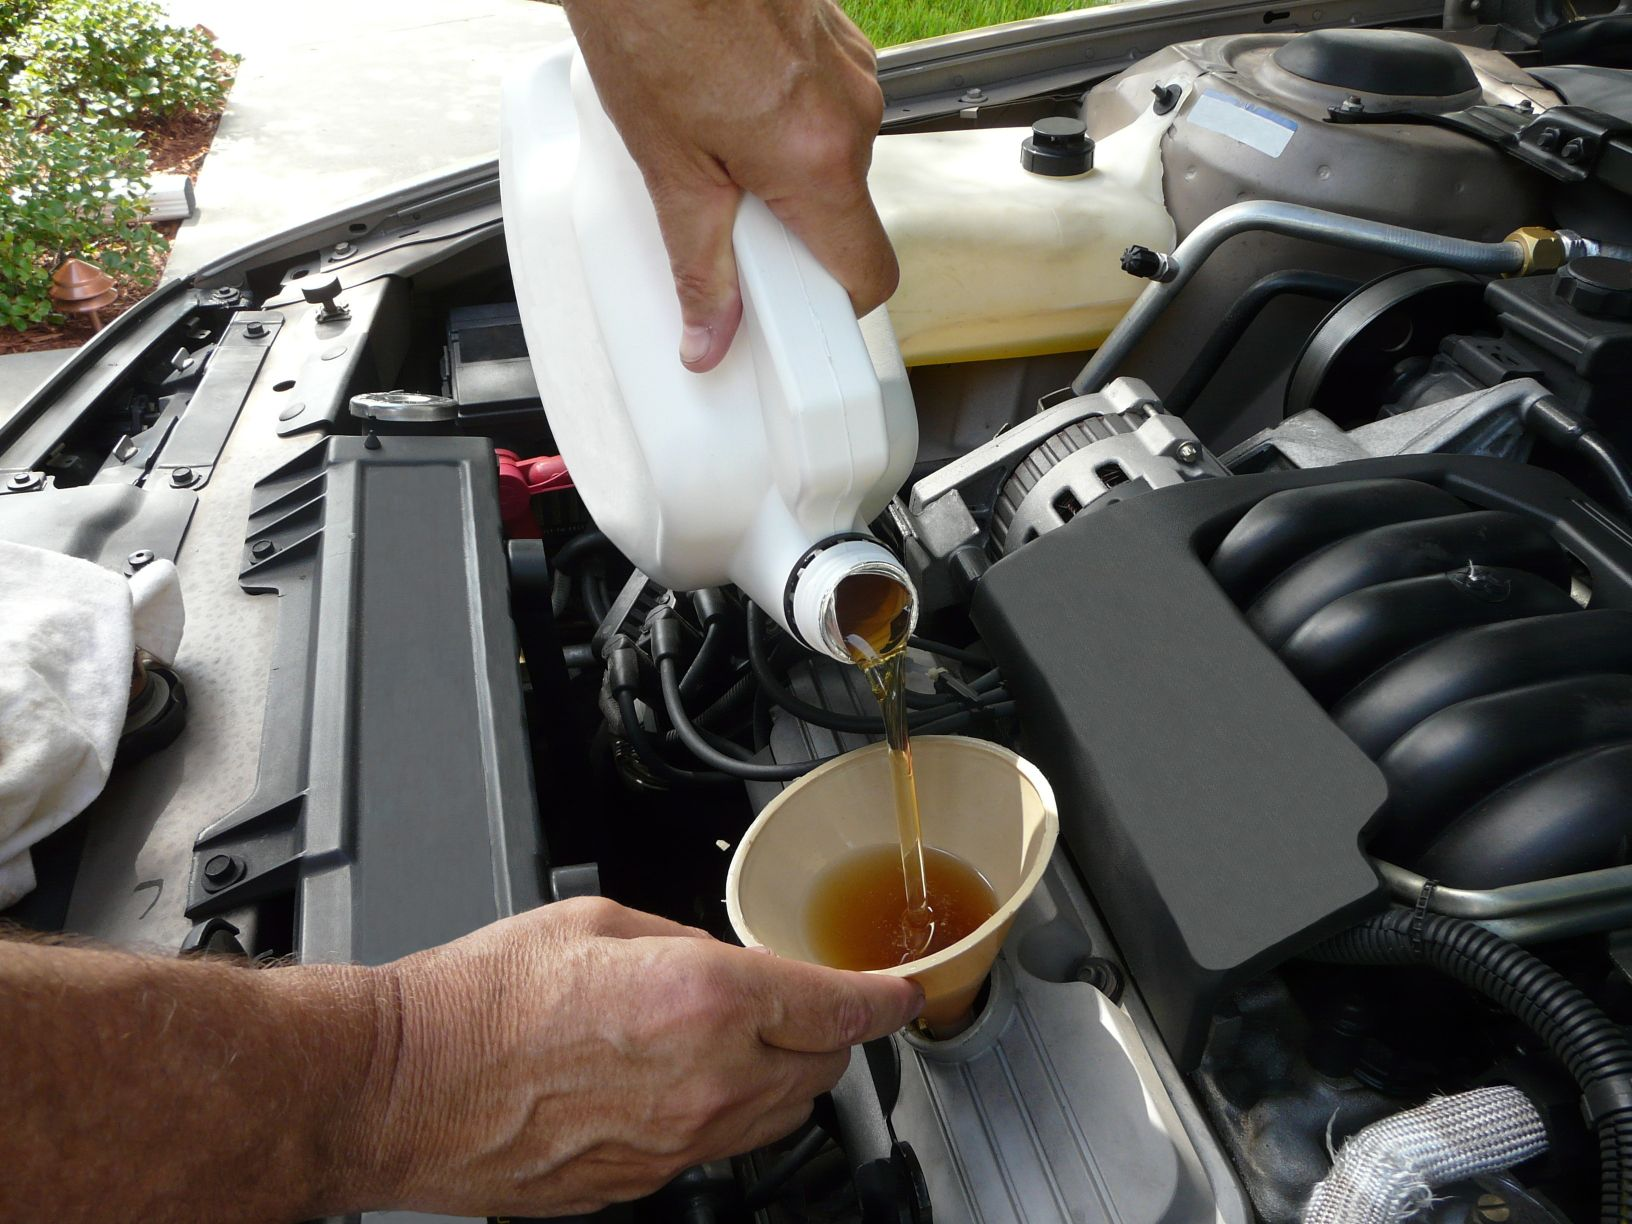 Lubricating Service - Automotive